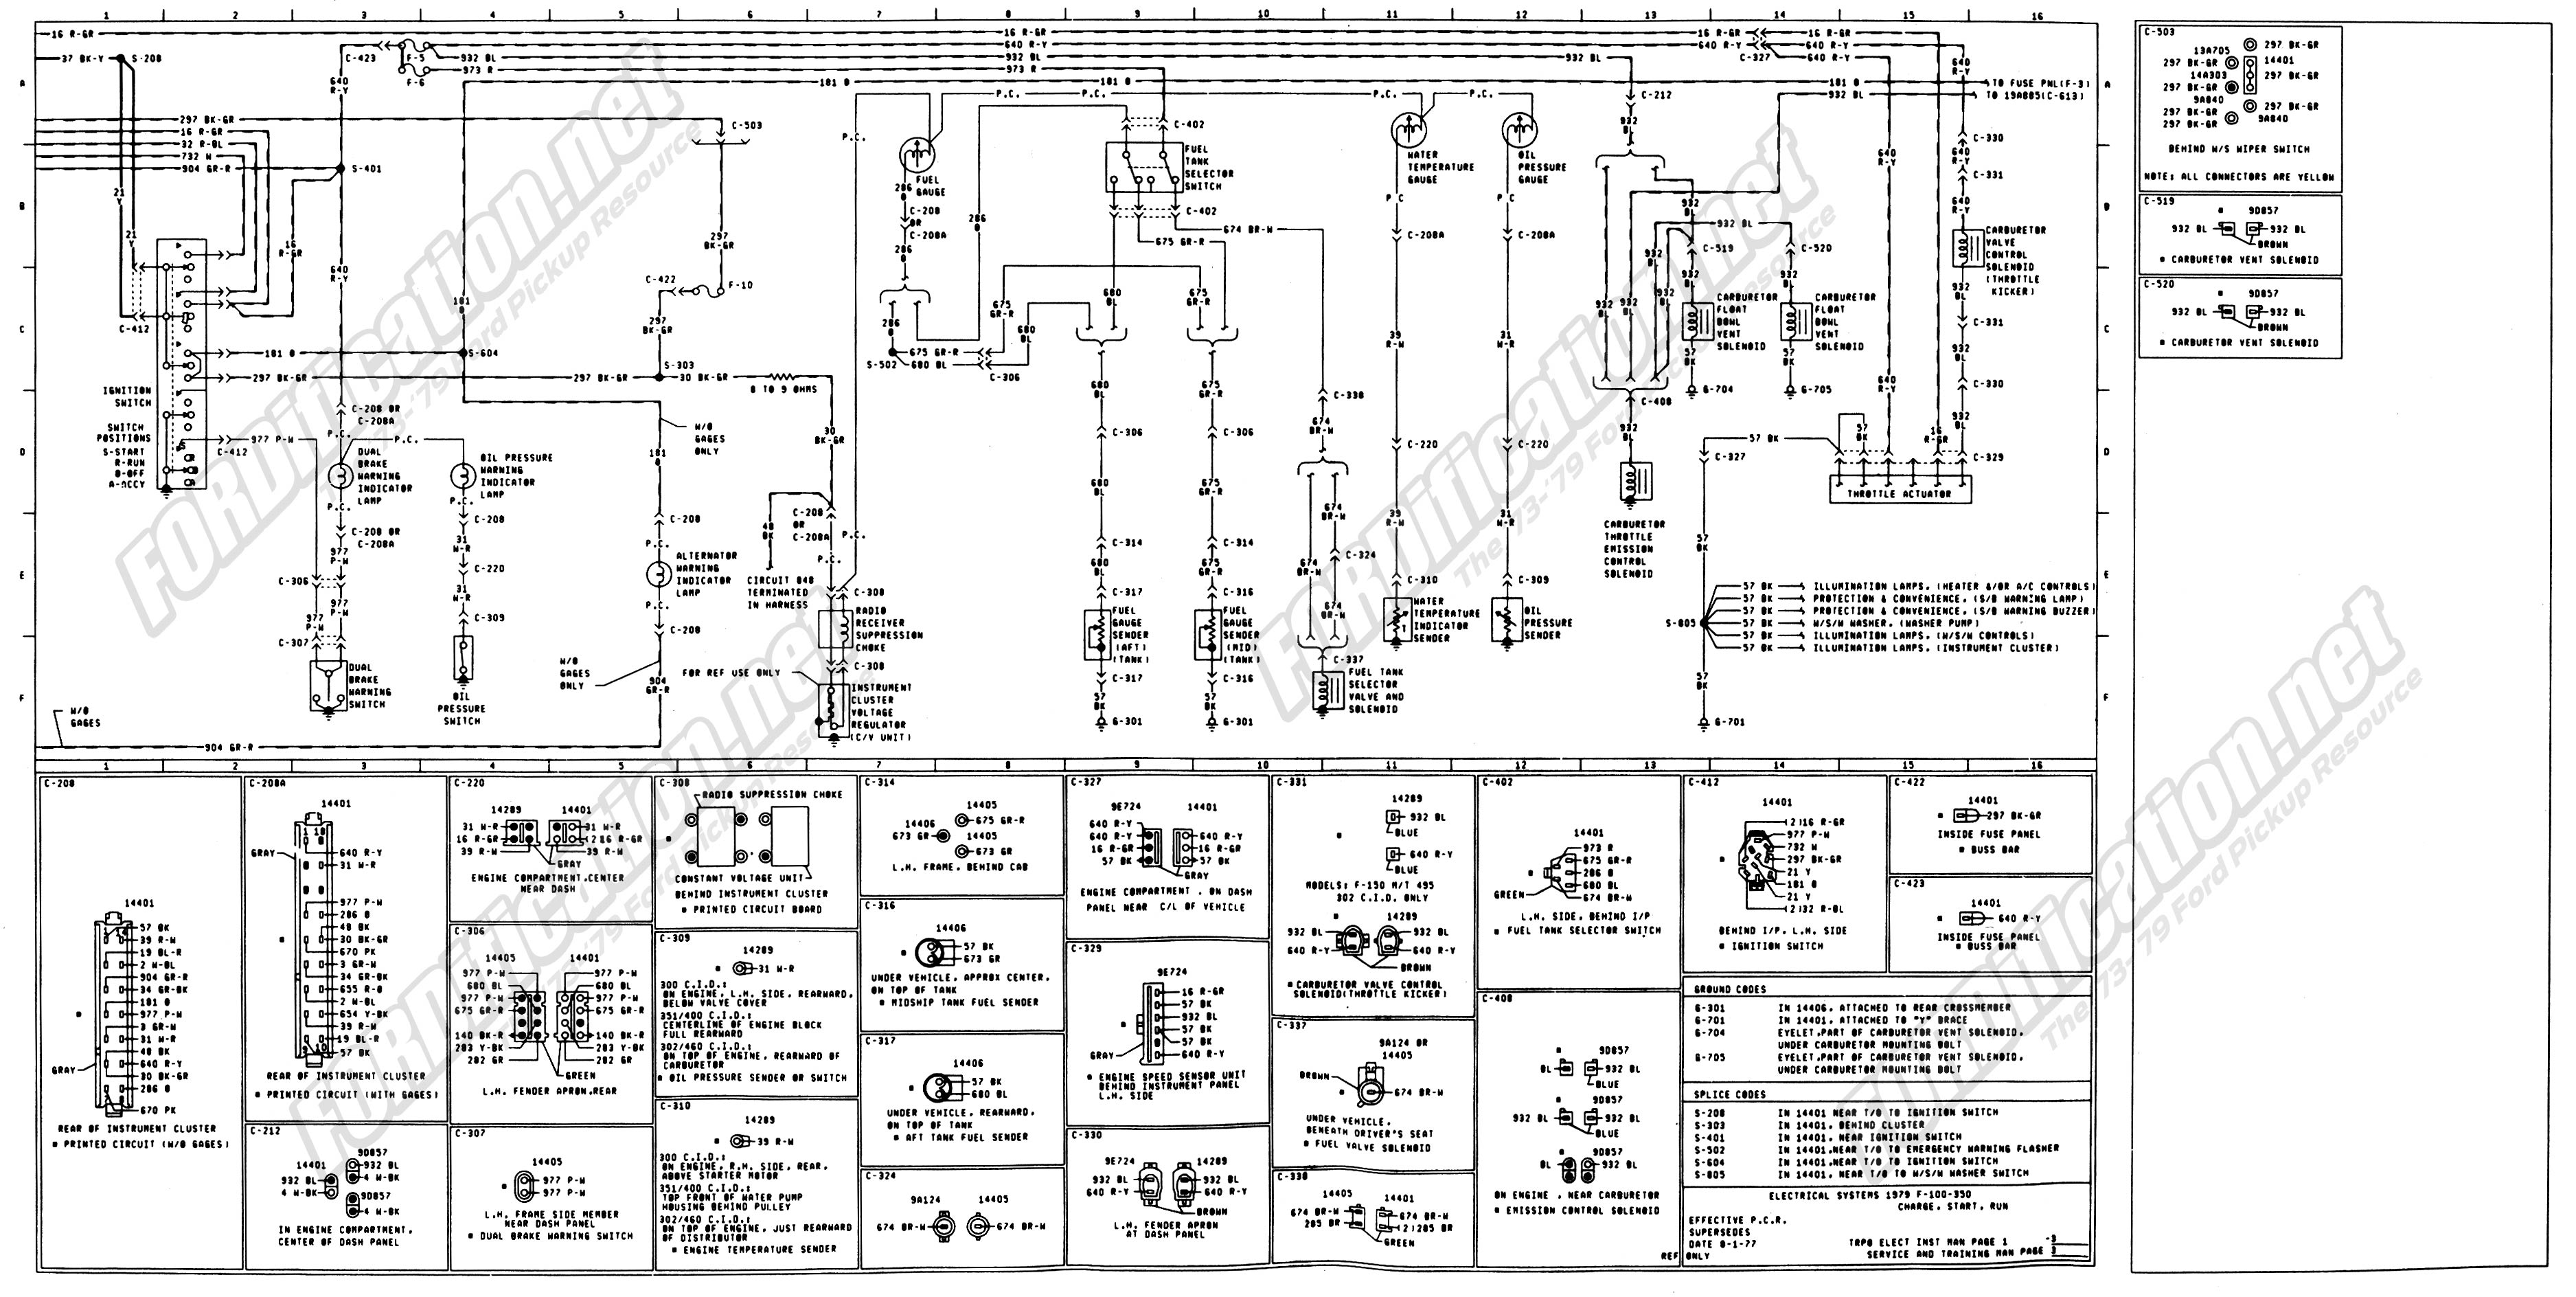 ford starter solenoid wiring diagram with 961502 Wiring Diagram Schamatic Help on Case 446 Garden Tractor Wiring Diagram moreover Oldwarn likewise 73 Shovelhead Wiring Diagram besides 3o77c Need Know Wires Plug Spot Back together with 89513 Bx Starter Motor.